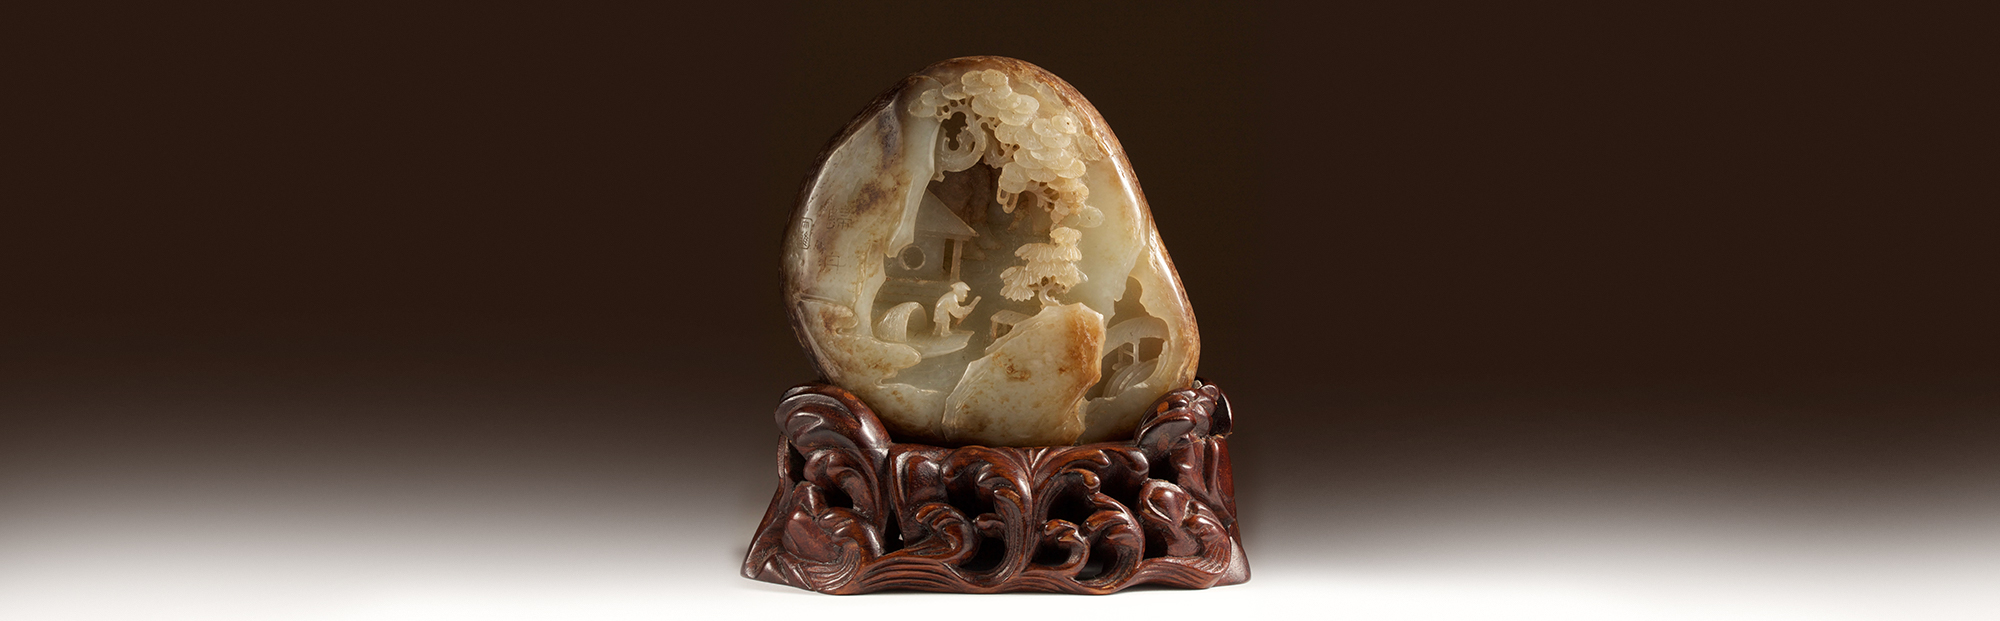 Chinese Jades and Snuff Bottles Auction